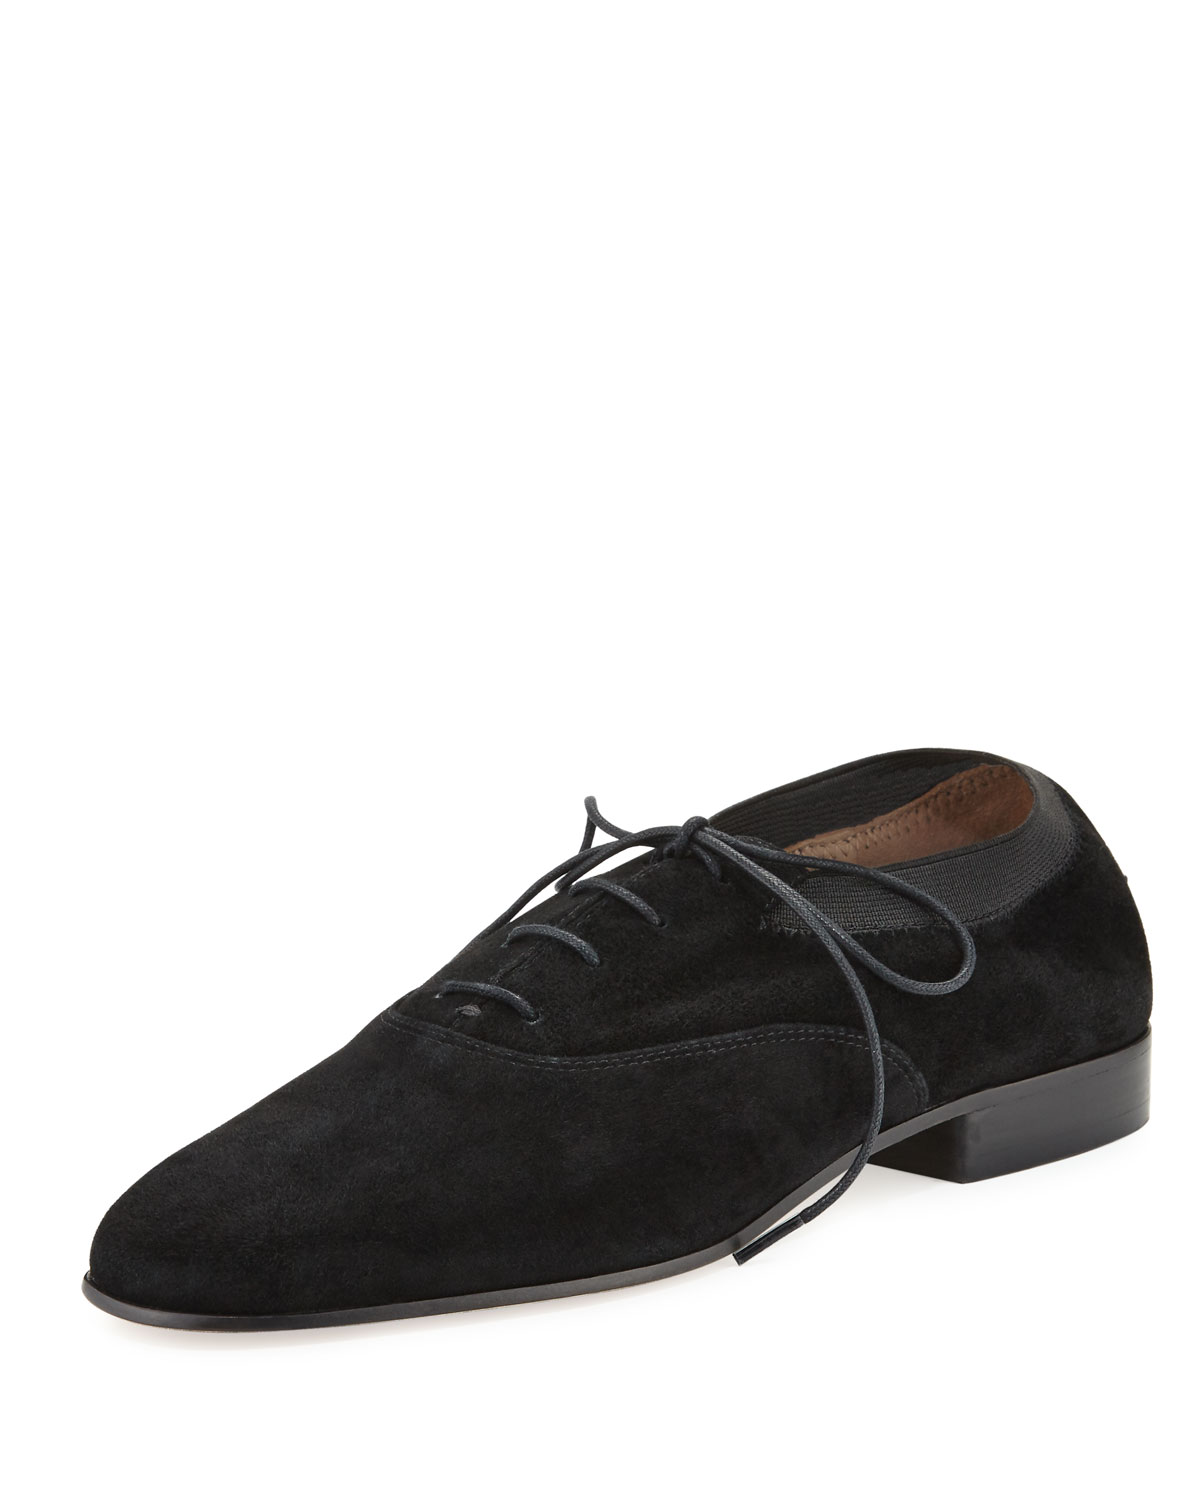 a154329eb98a Tory Burch Bombe Suede Oxford